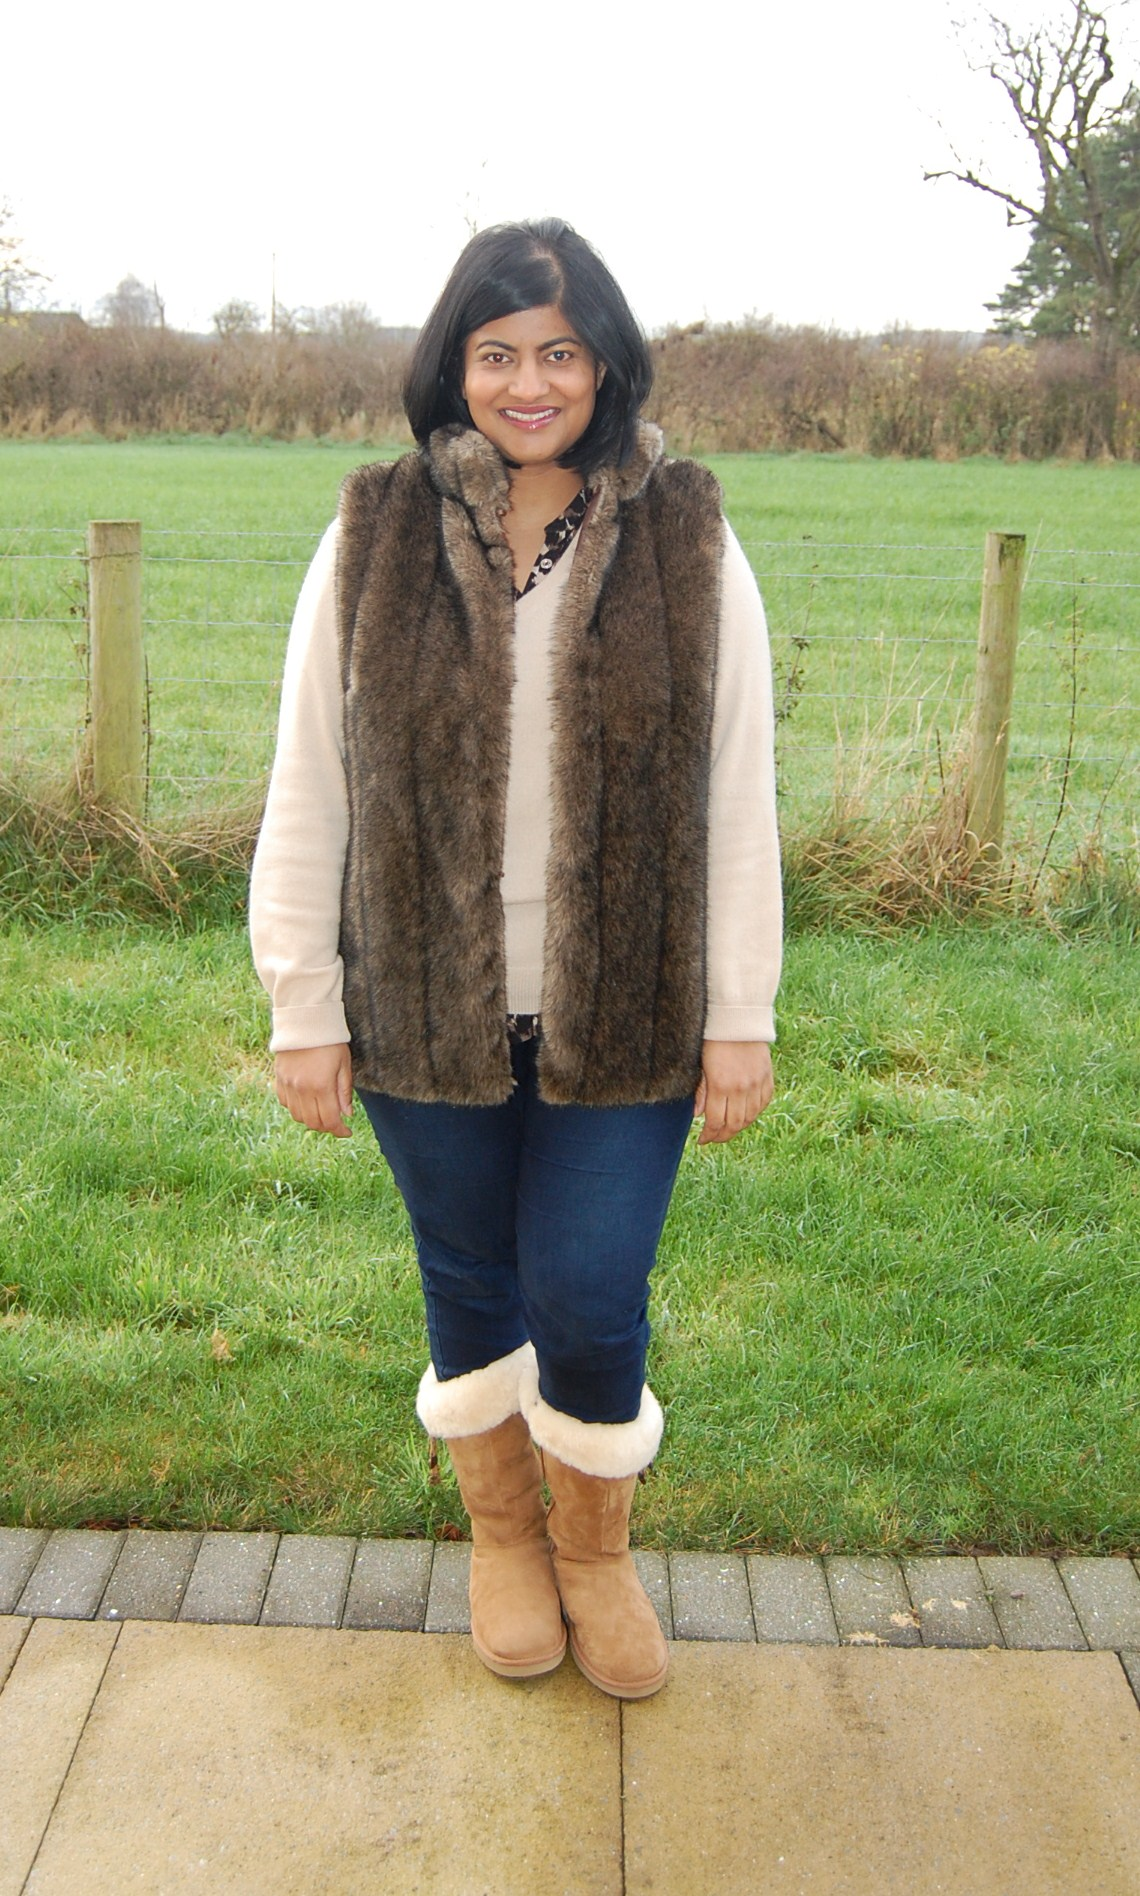 Queenfur Real Knitted Rabbit Fur Vest Fashion Natural Fur Gilet Winter Waistcoat See more like this. New Listing Mint Velvet Faux Fur Gilet Size Pre-Owned. $ Time left 6d 2h left. 0 bids. From United Kingdom. or Best Offer. Customs services and international tracking provided +$ shipping.